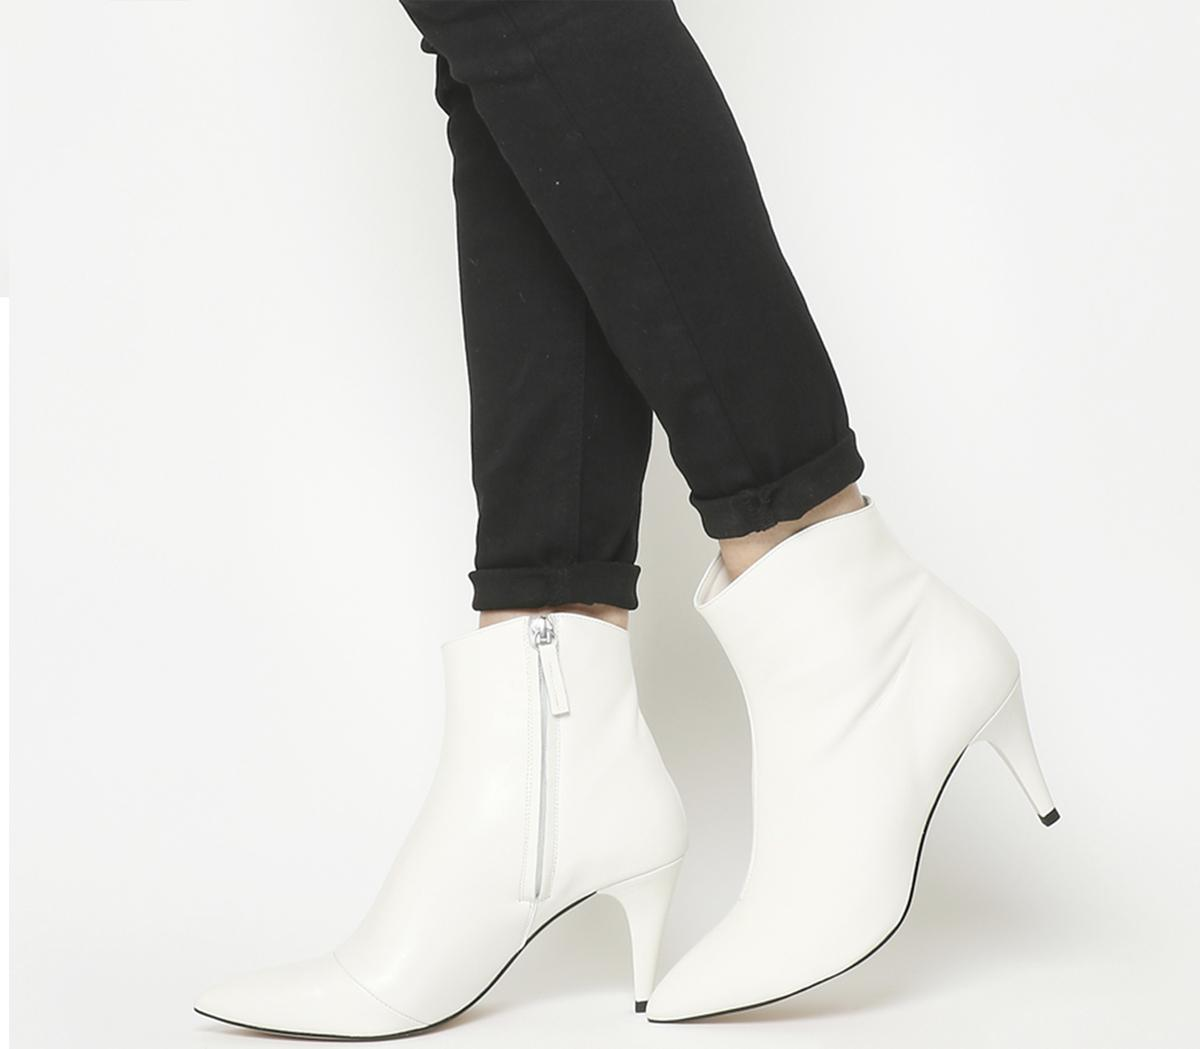 Office Ab Fab Stiletto Boots White